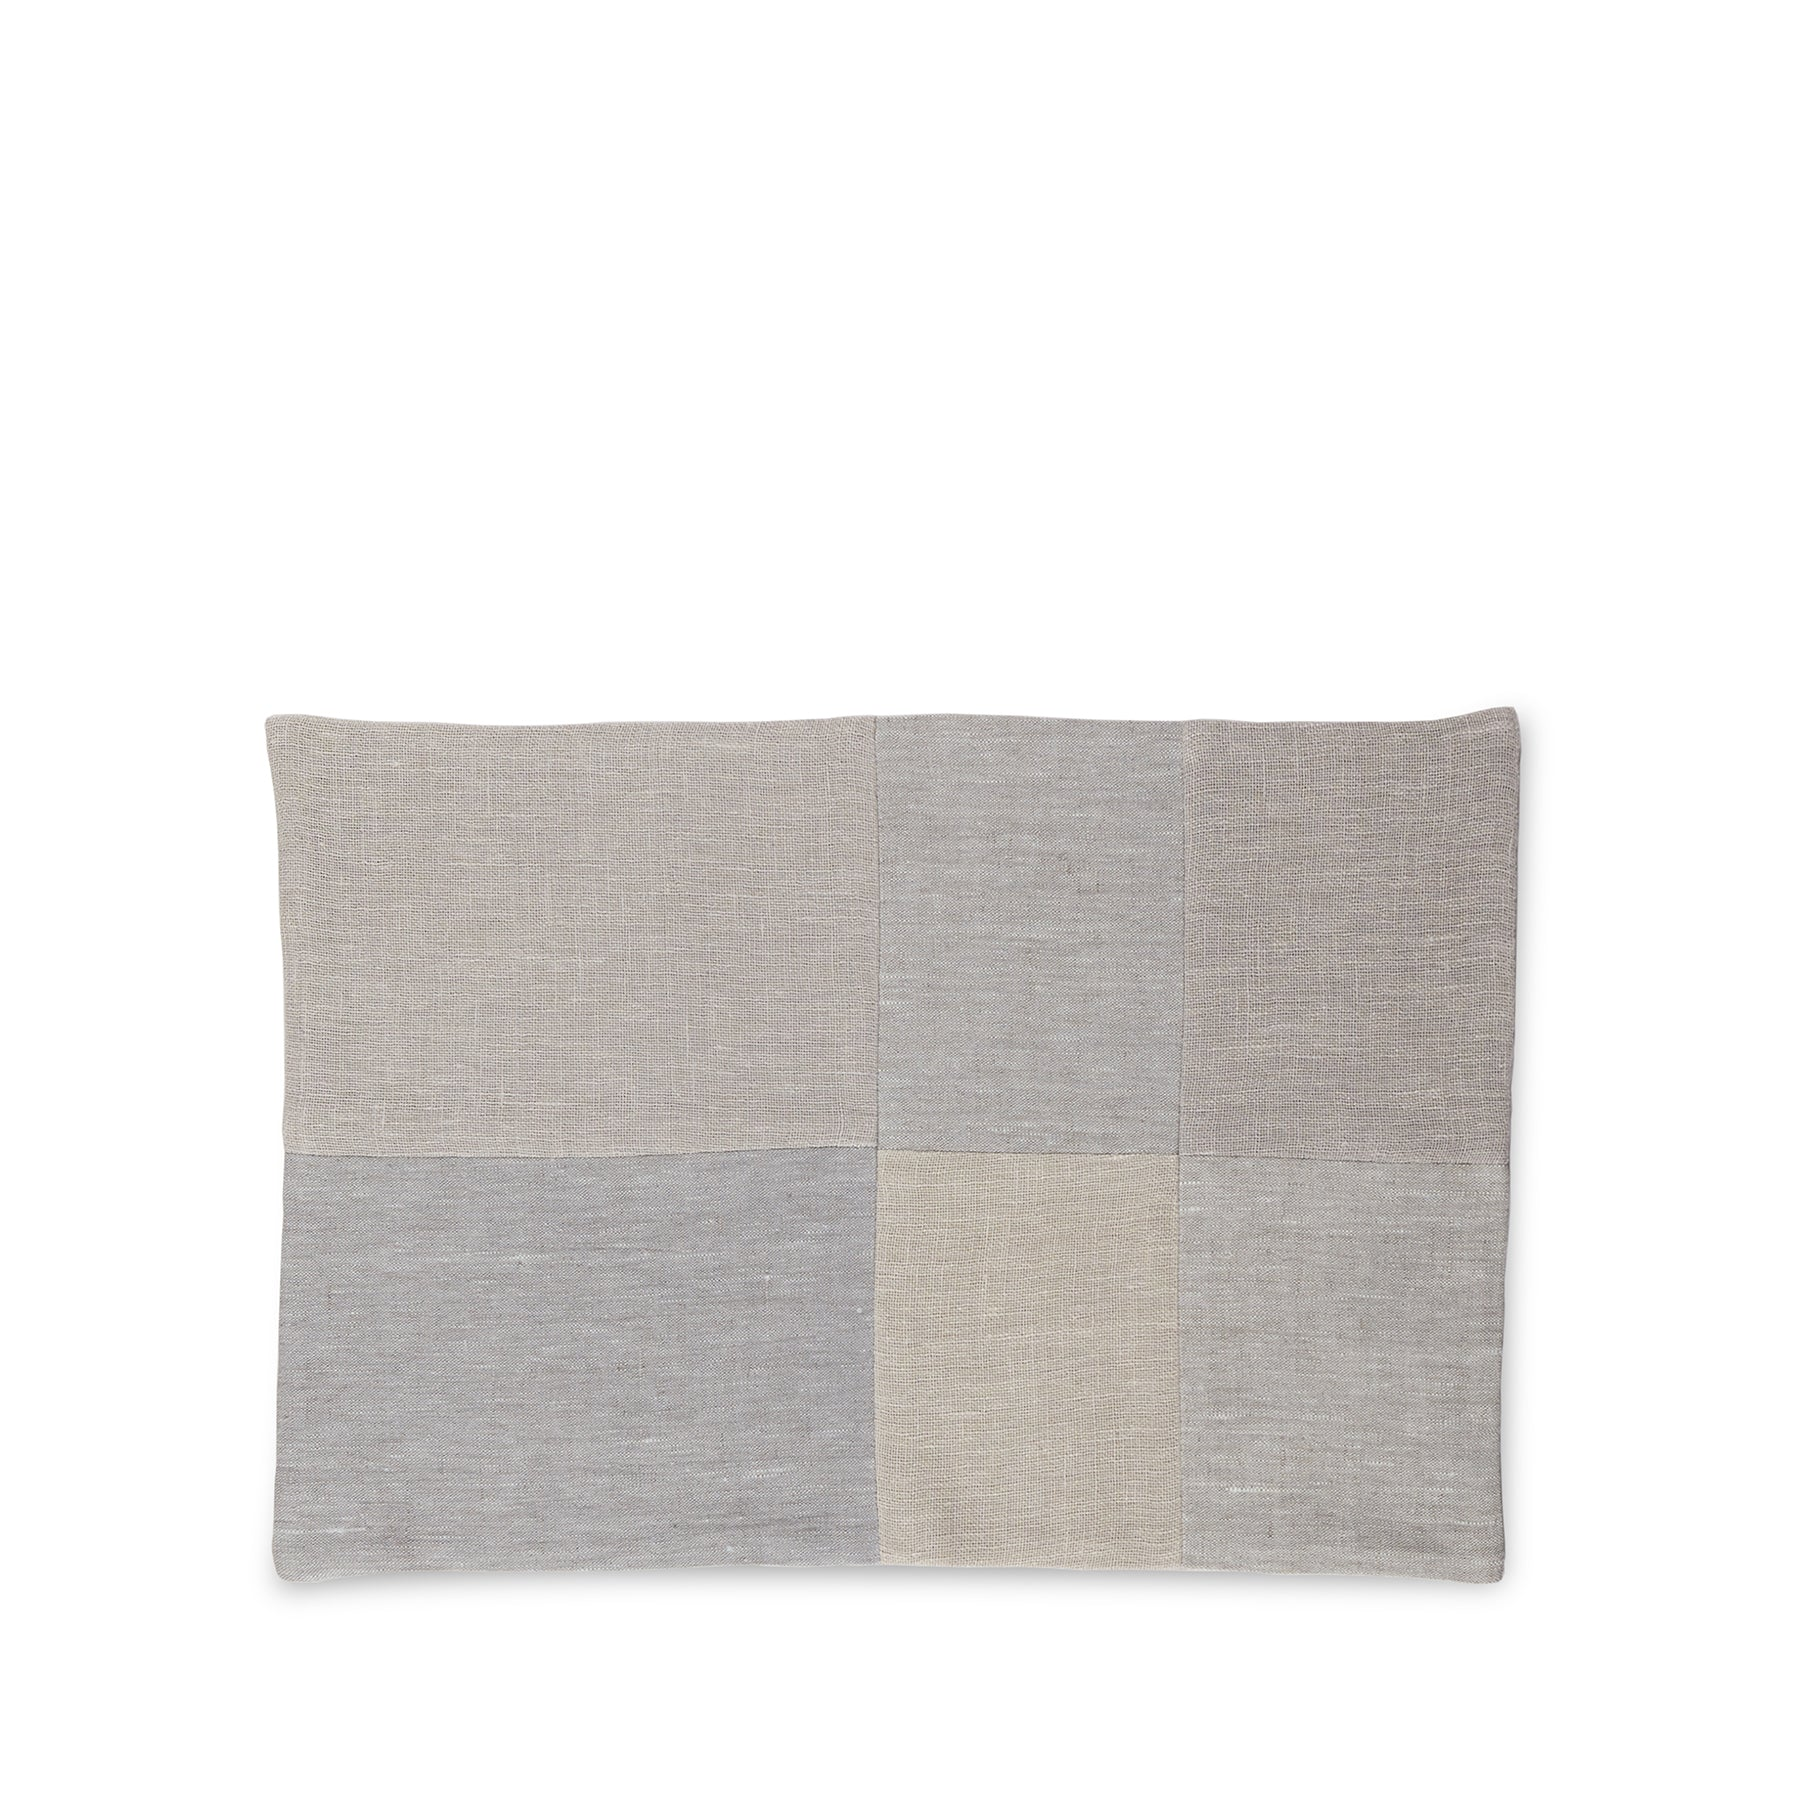 Linen Patchwork Placemat in Fog Zoom Image 1